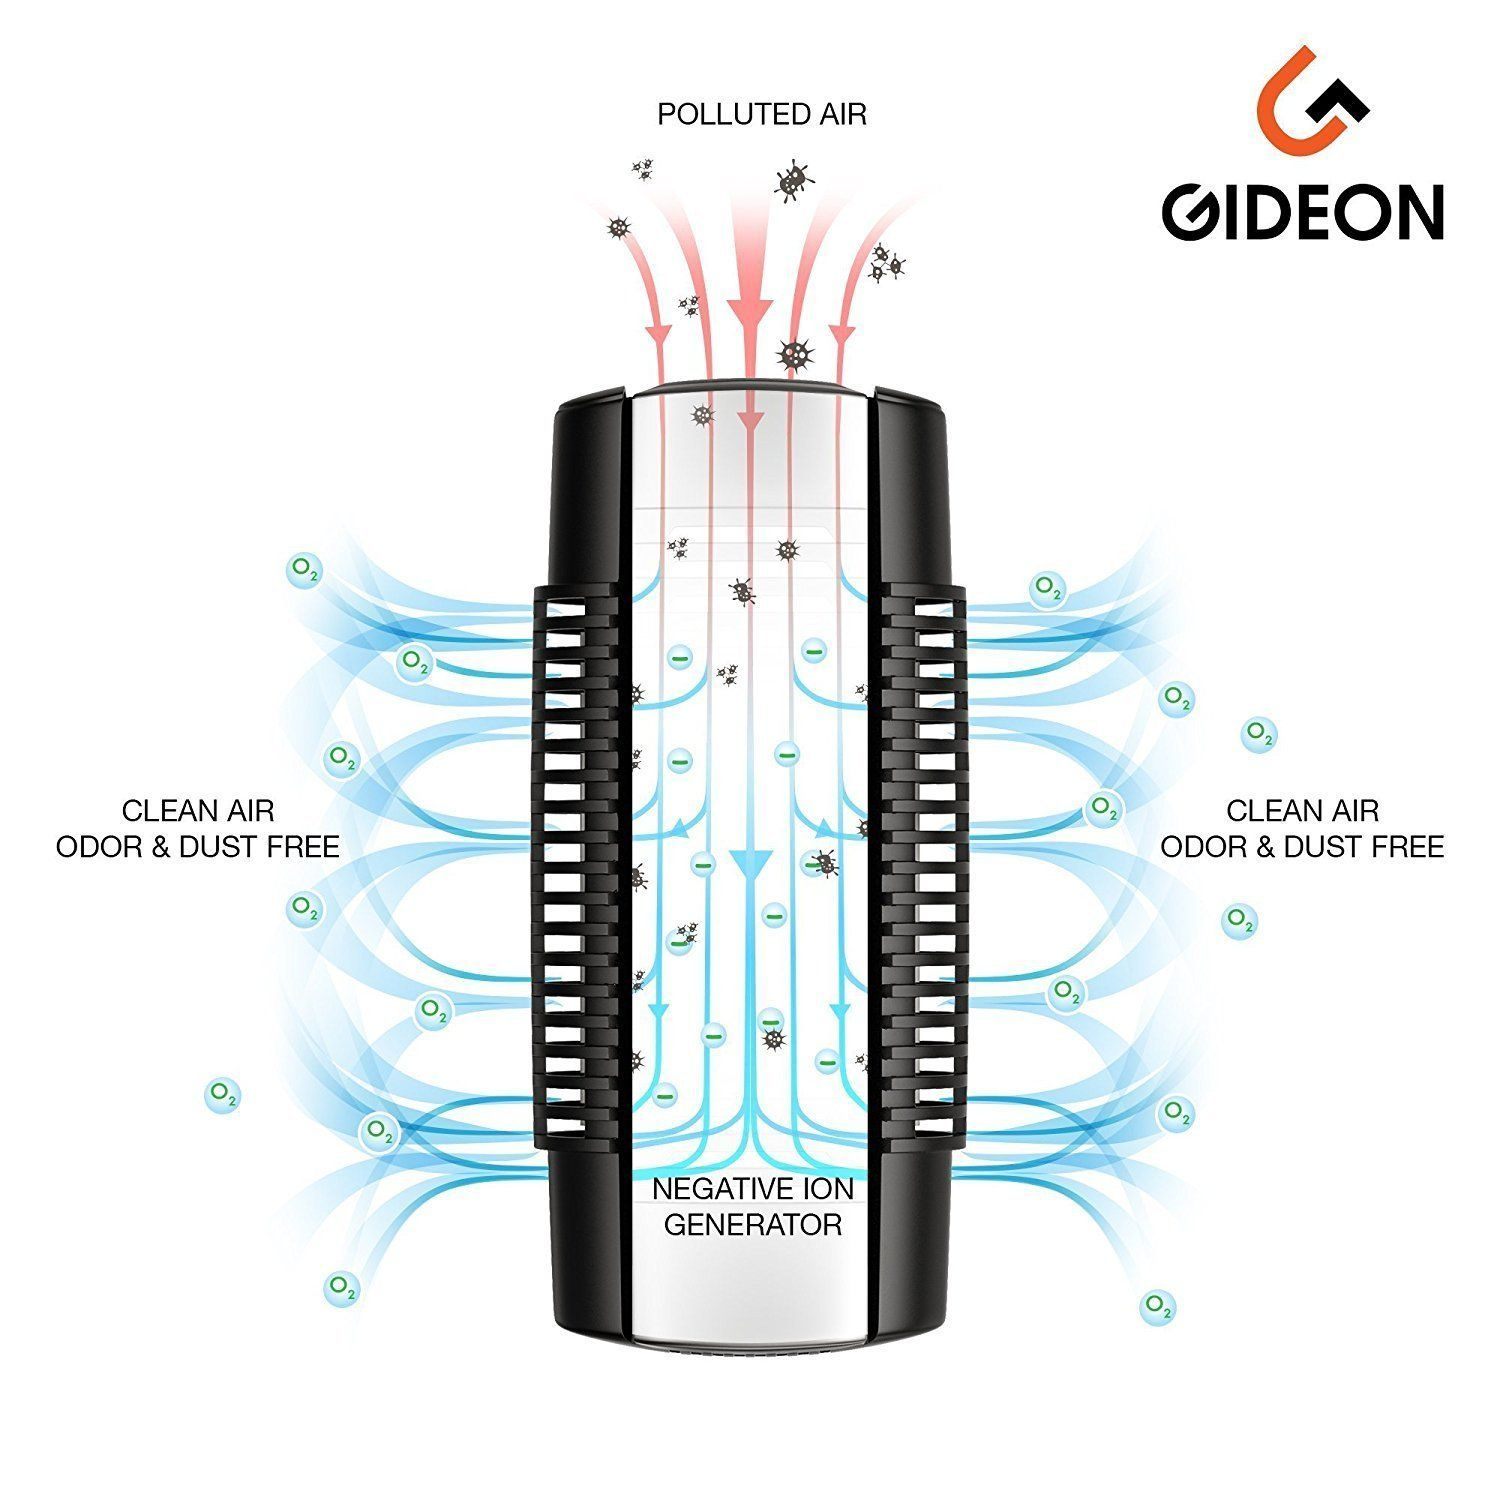 Gideon Plugin Air Purifier Cleaner with UV Air Sanitizer